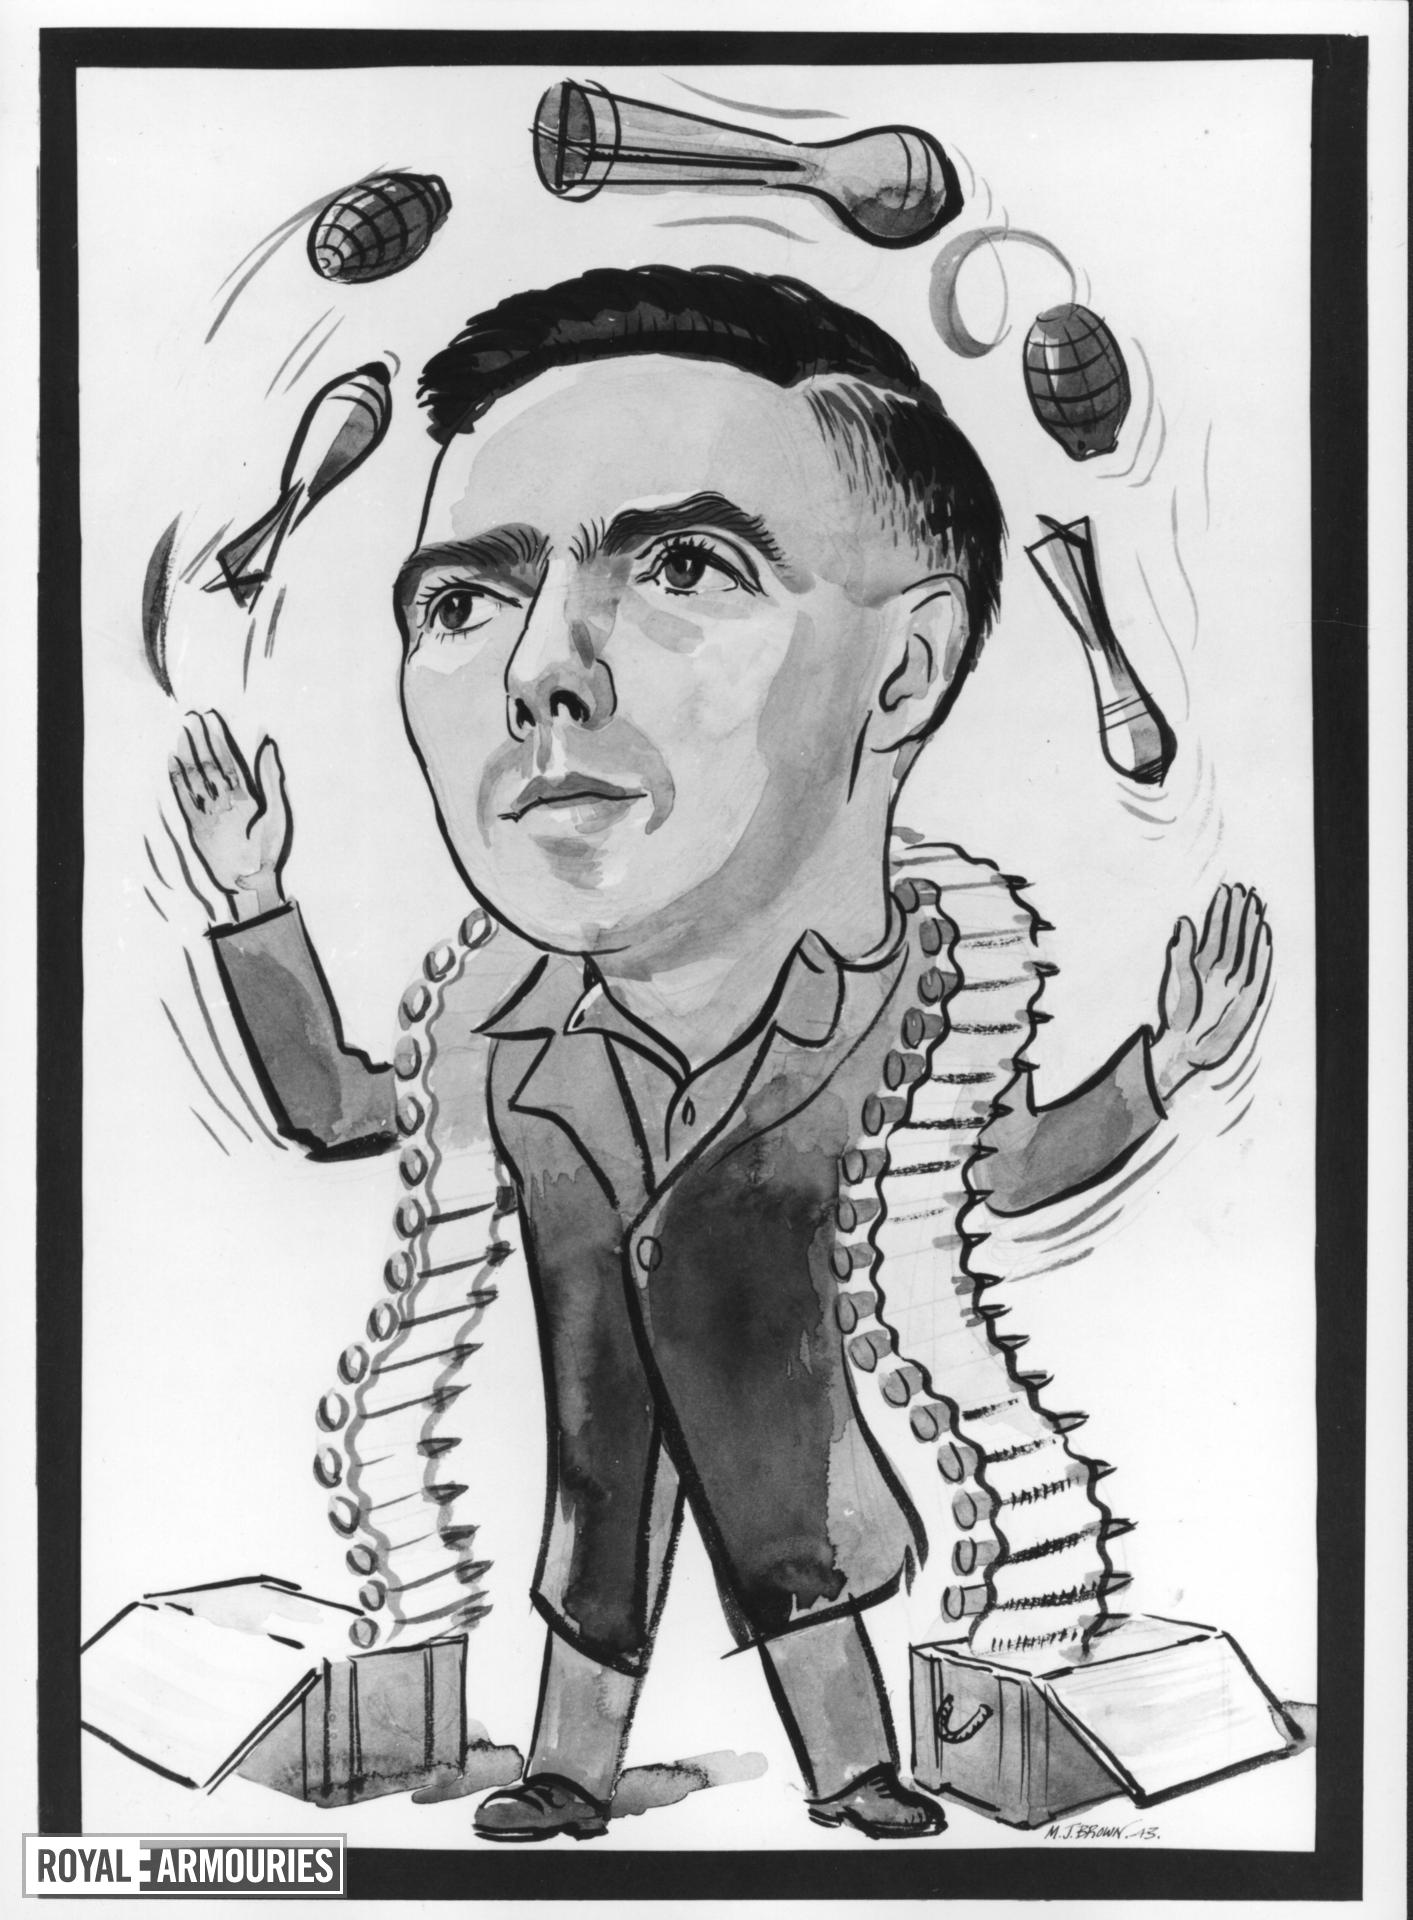 Caricature by M.J. Brown of Howard Blackmore in 1943